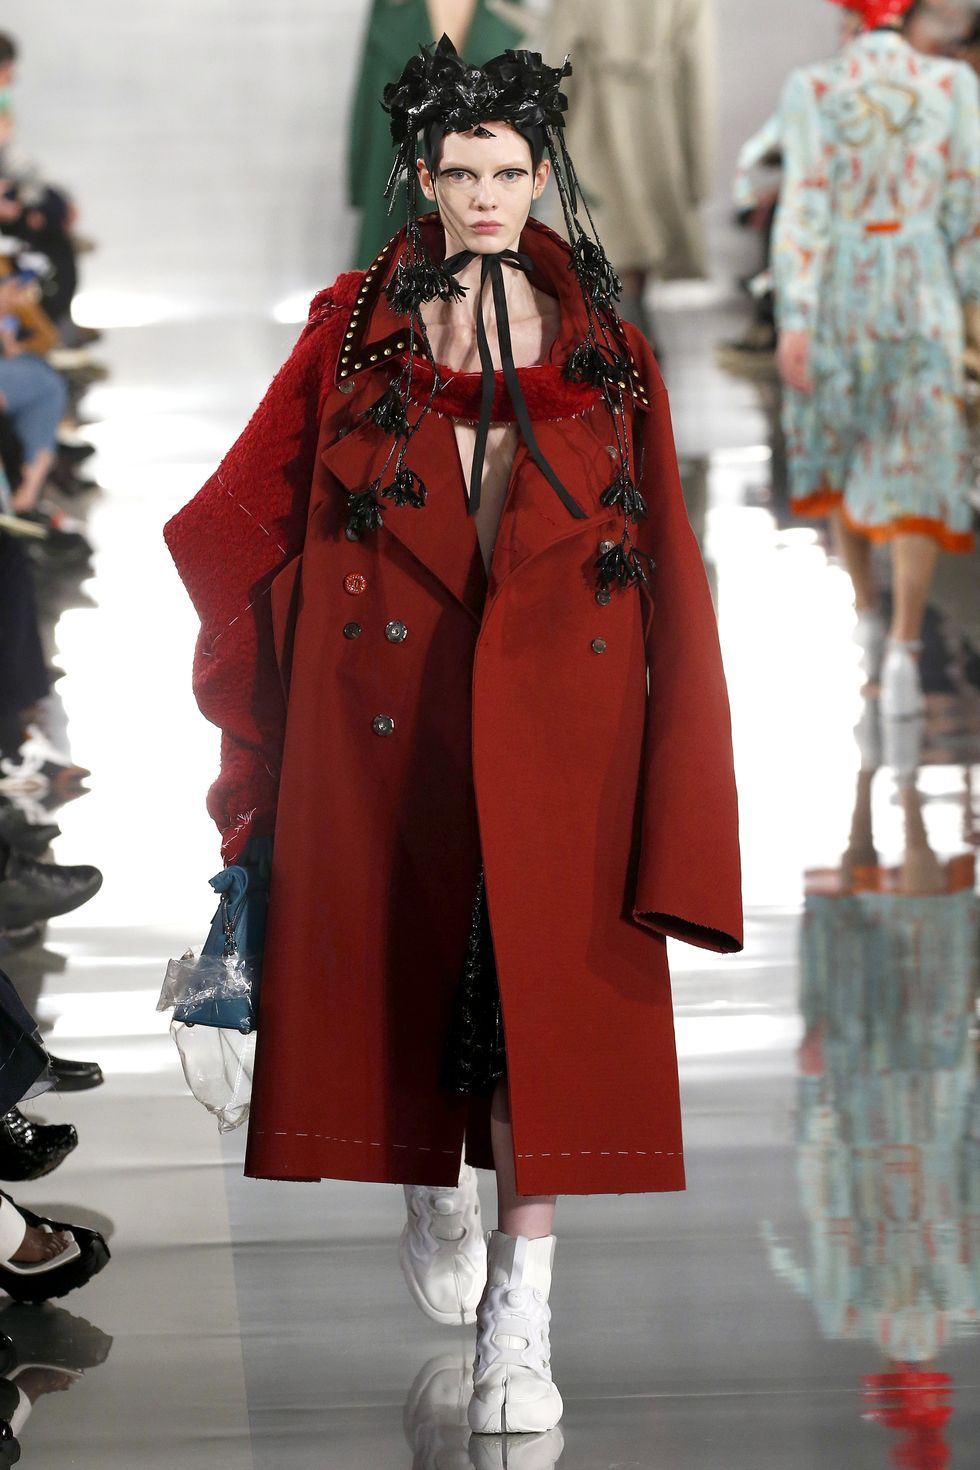 Be Amazed By Paris Fashion Week 2020's Runway Looks paris fashion week 2020 Be Amazed By Paris Fashion Week 2020's Runway Looks gettyimages 1208803274